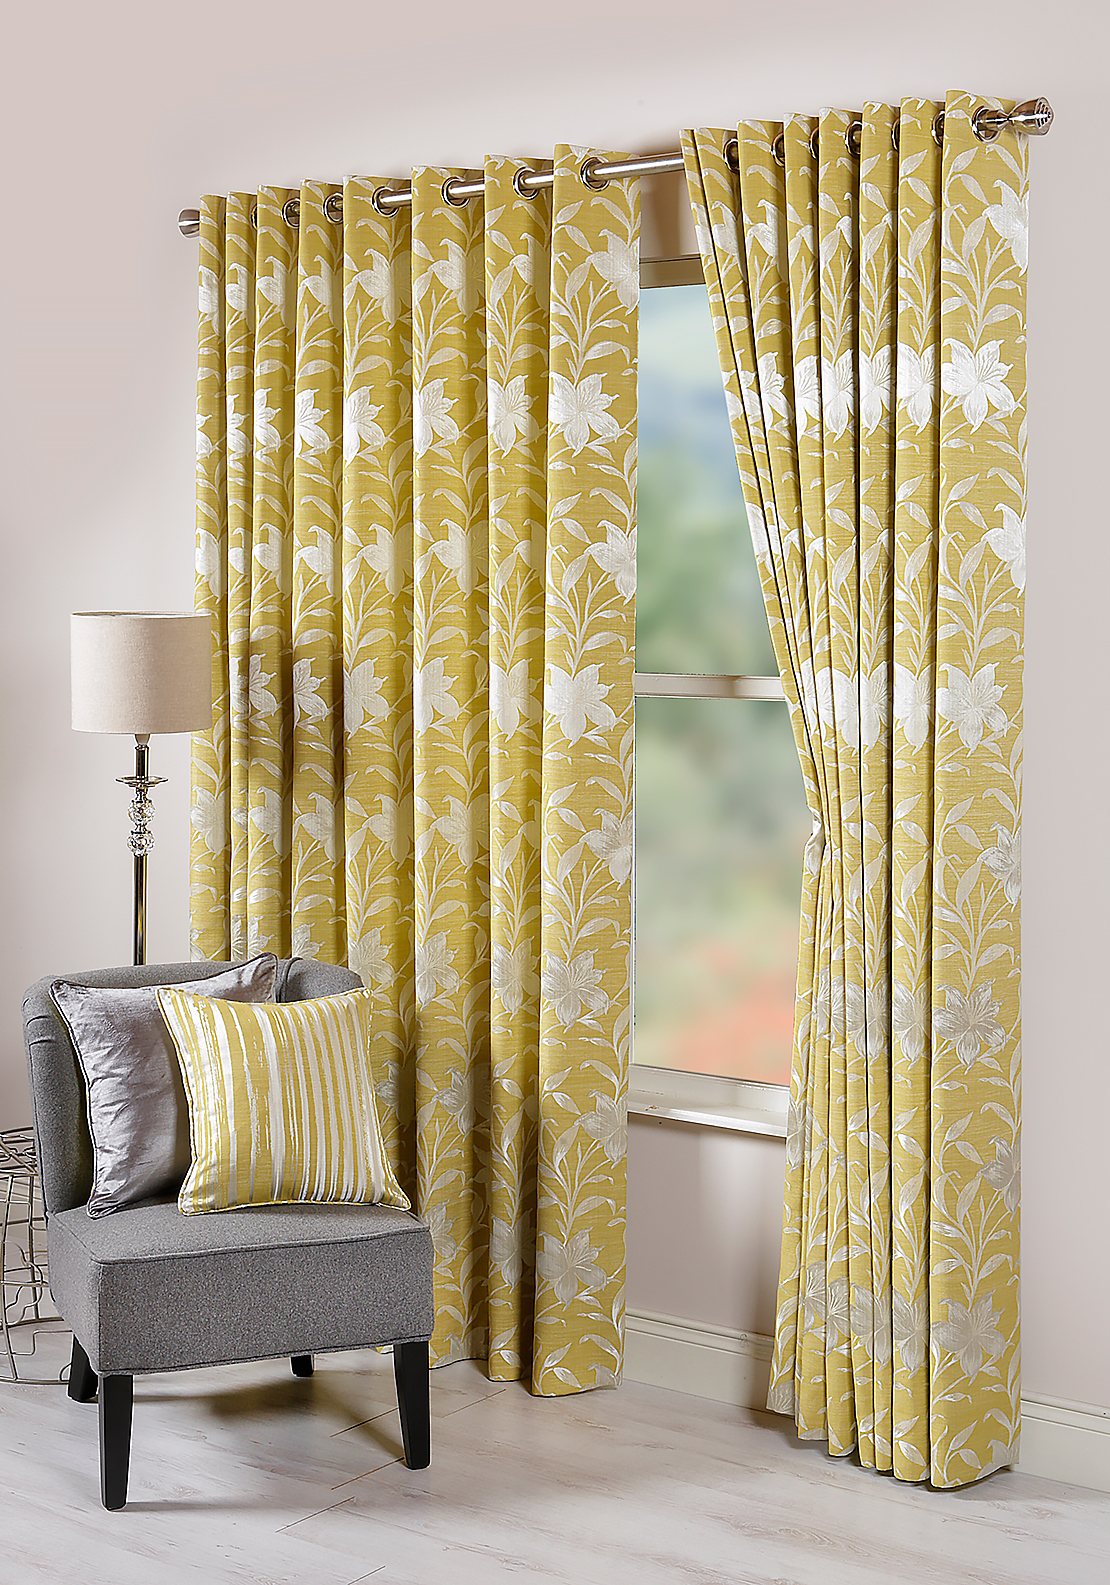 Scatterbox Nicola Floral Print Fully Lined Eyelet Curtains, Yellow, 138cm x 90cm